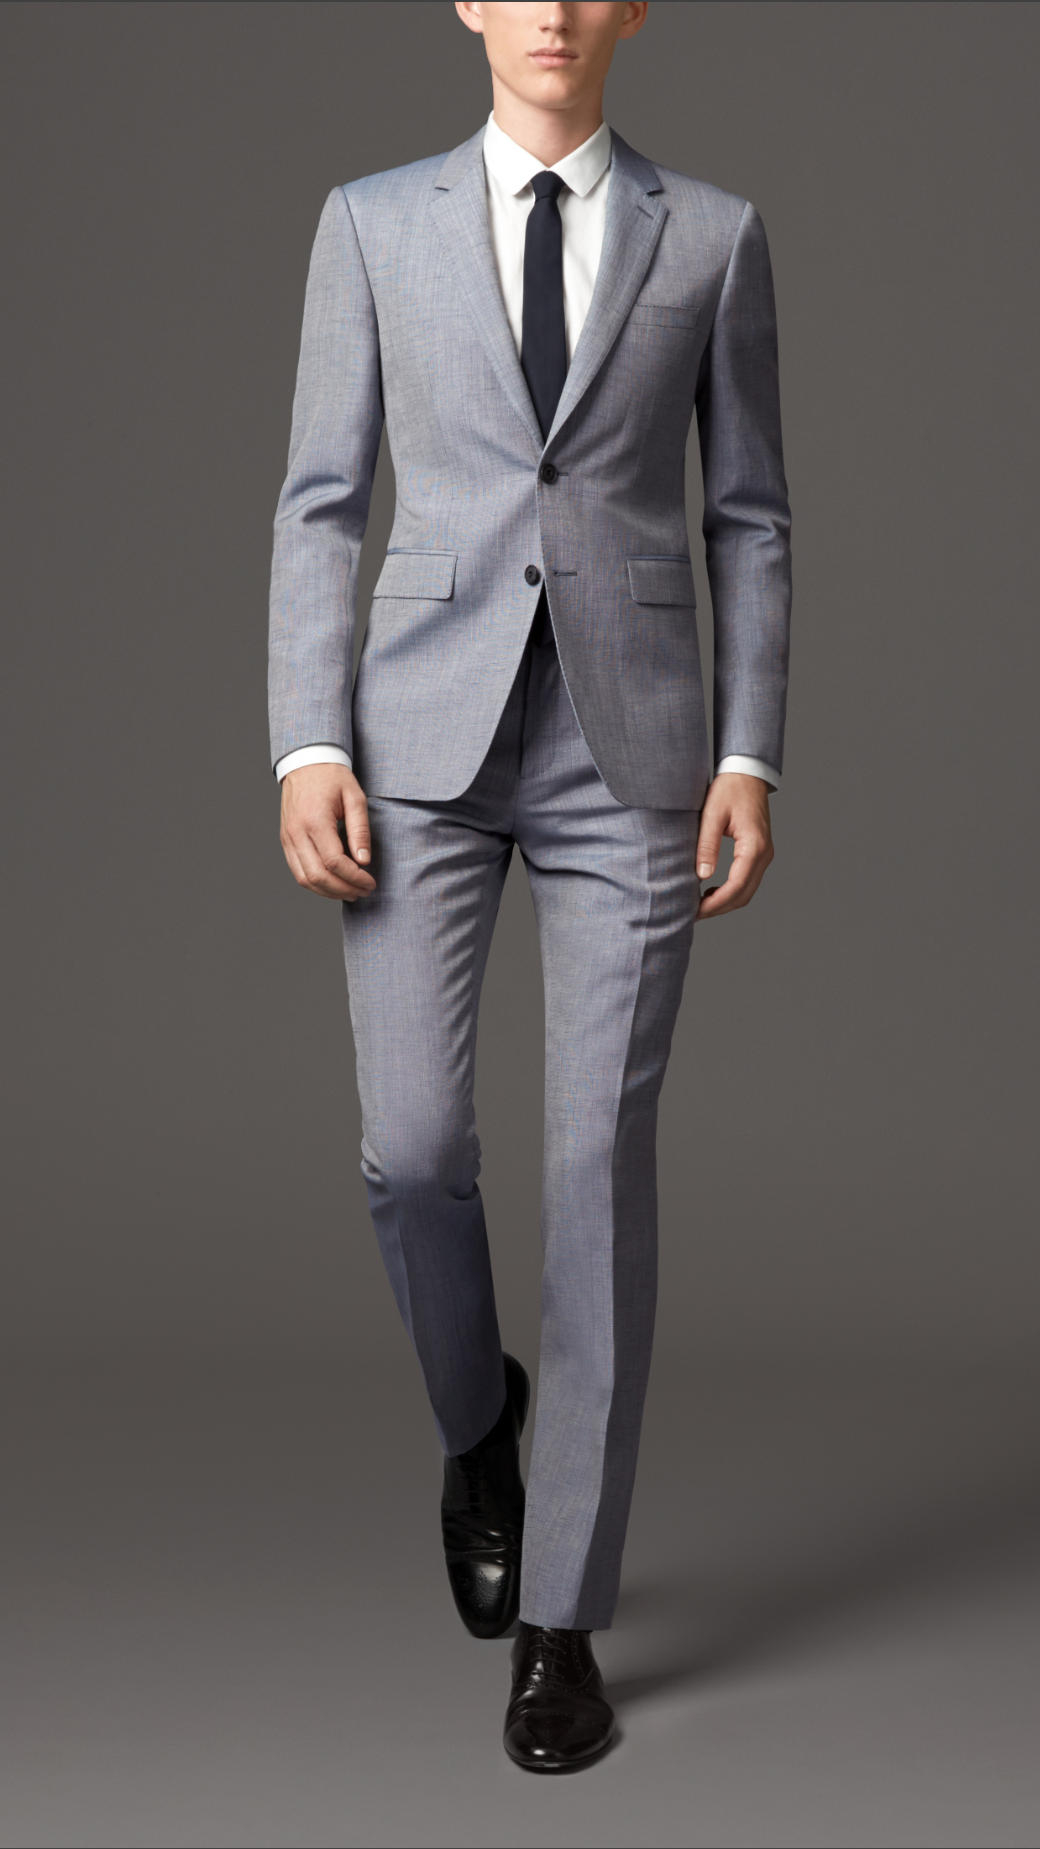 Get the stylish fit you deserve with expertly designed suits from this collection at Banana Republic. Shop men's modern suits at Banana Republic and have a fantastic new outfit for business or pleasure, and everything in between.